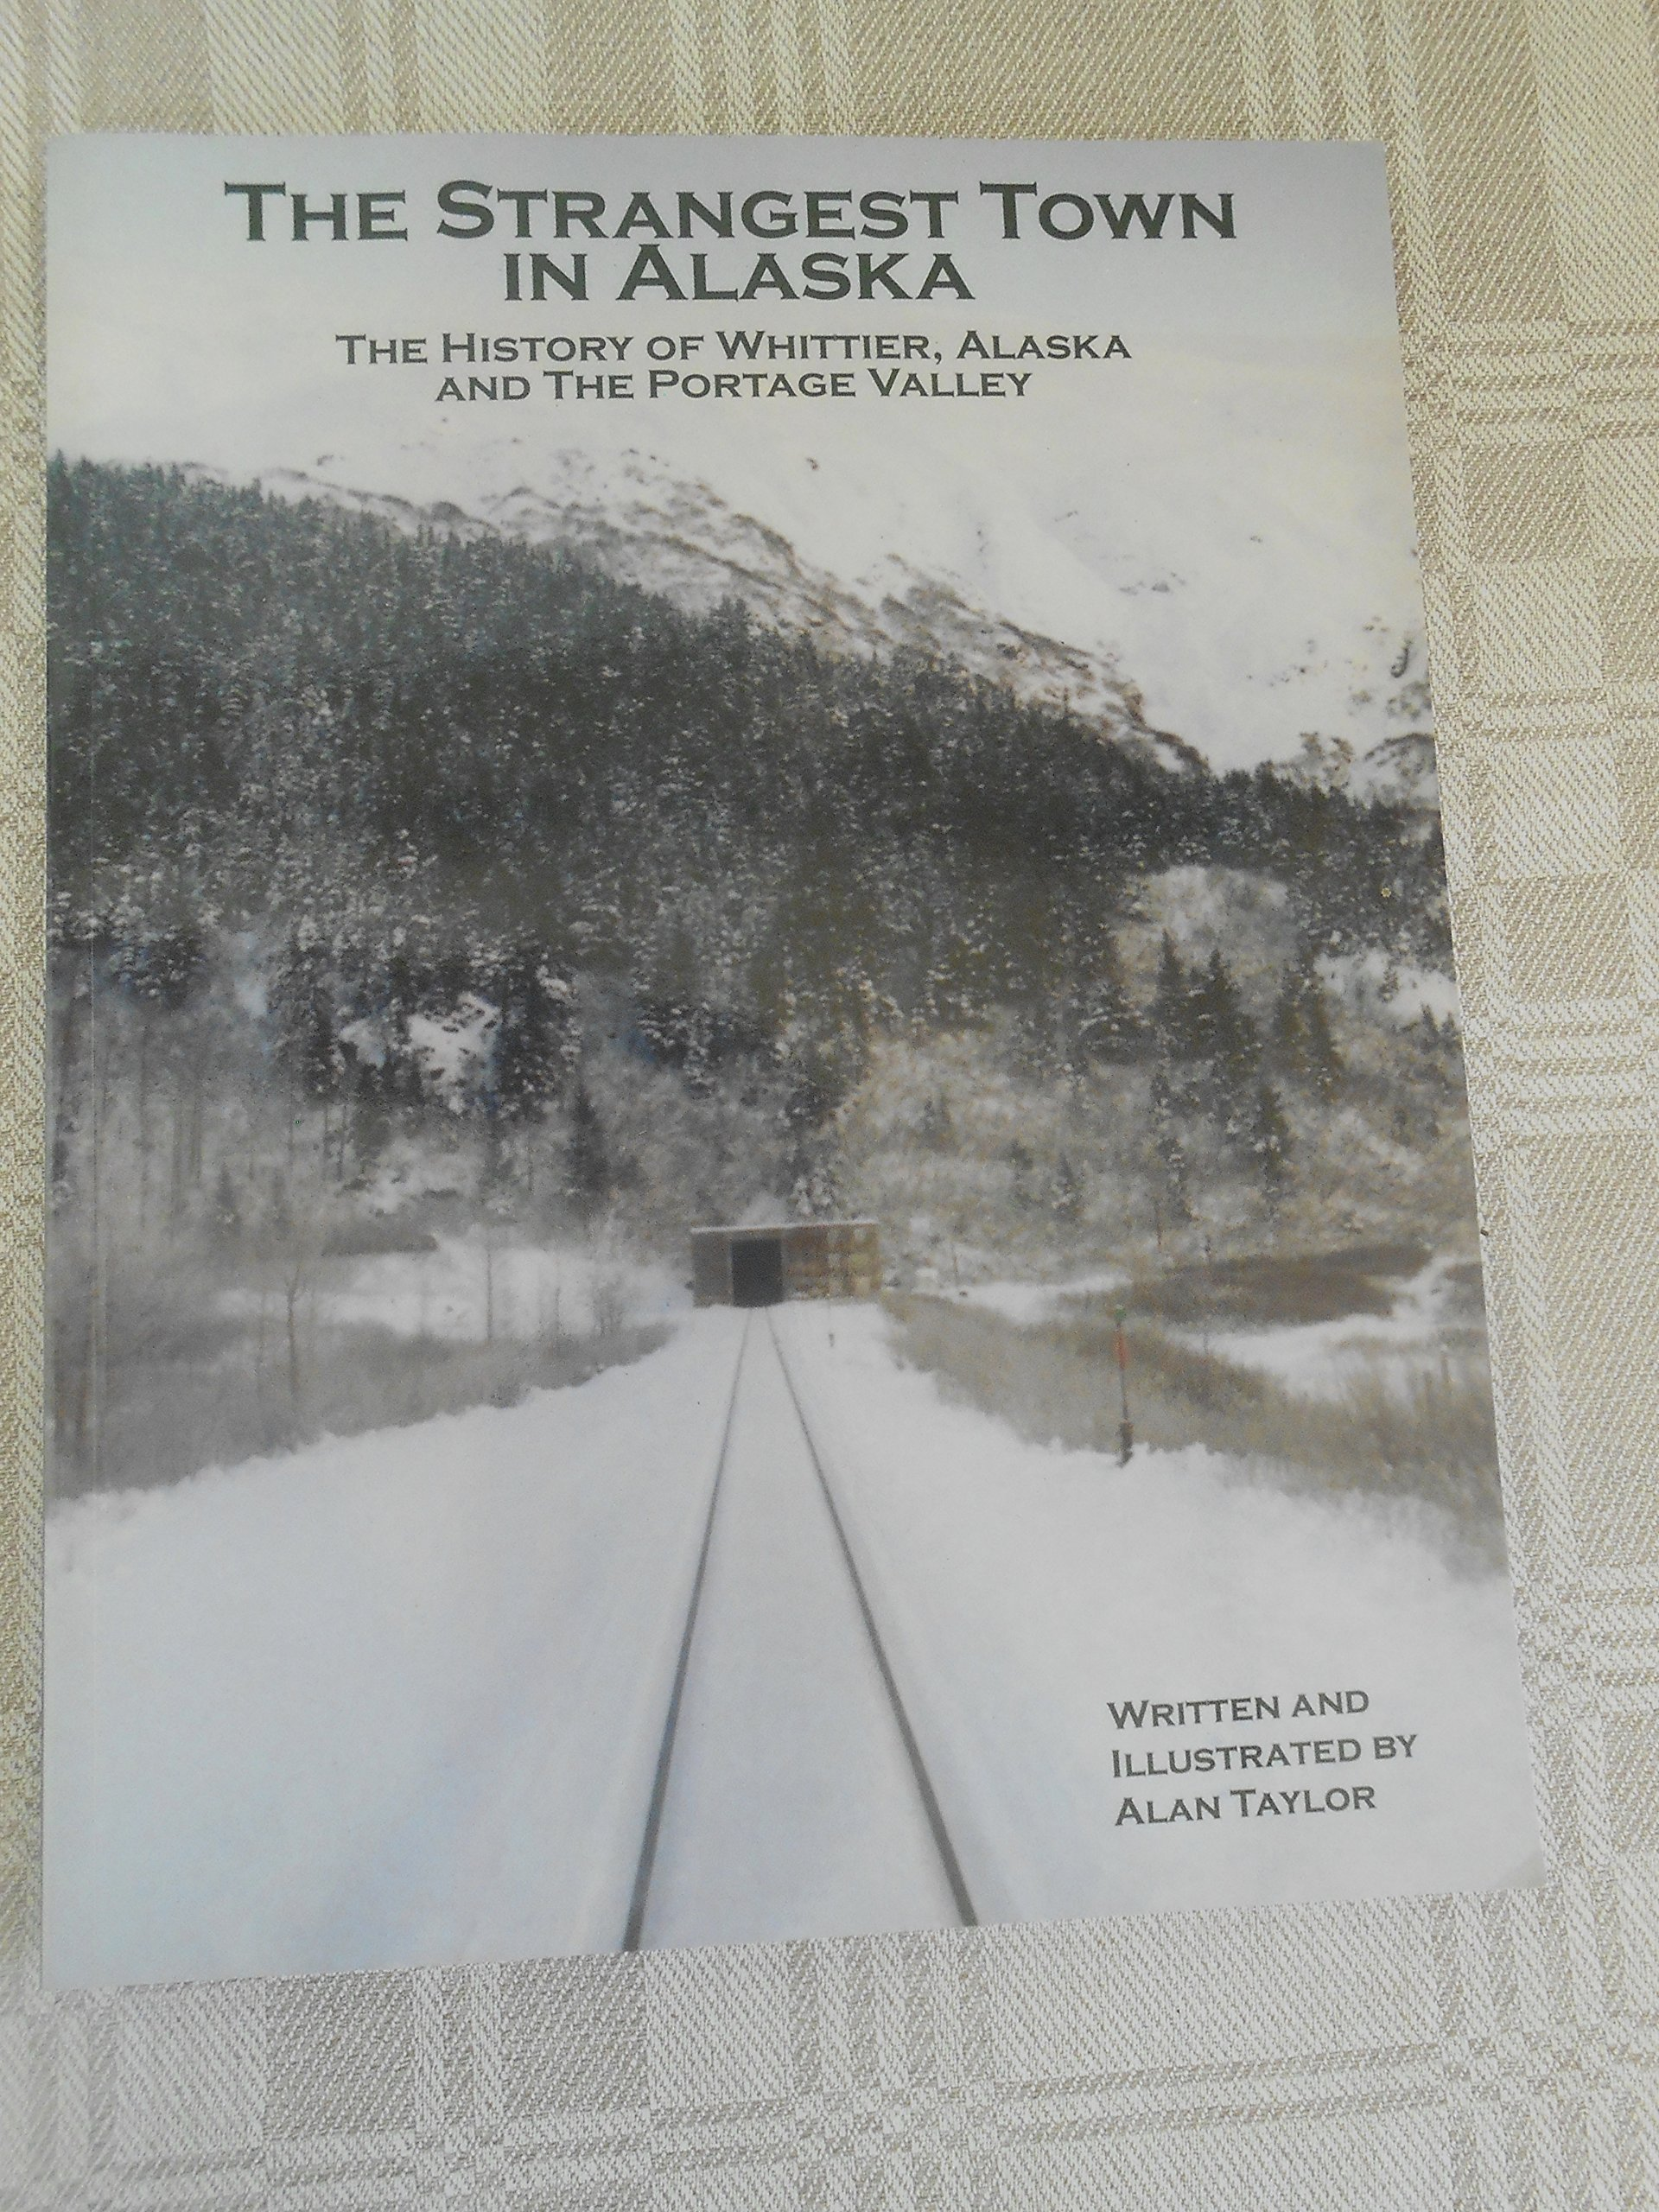 The strangest town in Alaska: The history of Whittier, Alaska, and the Portage Valley pdf